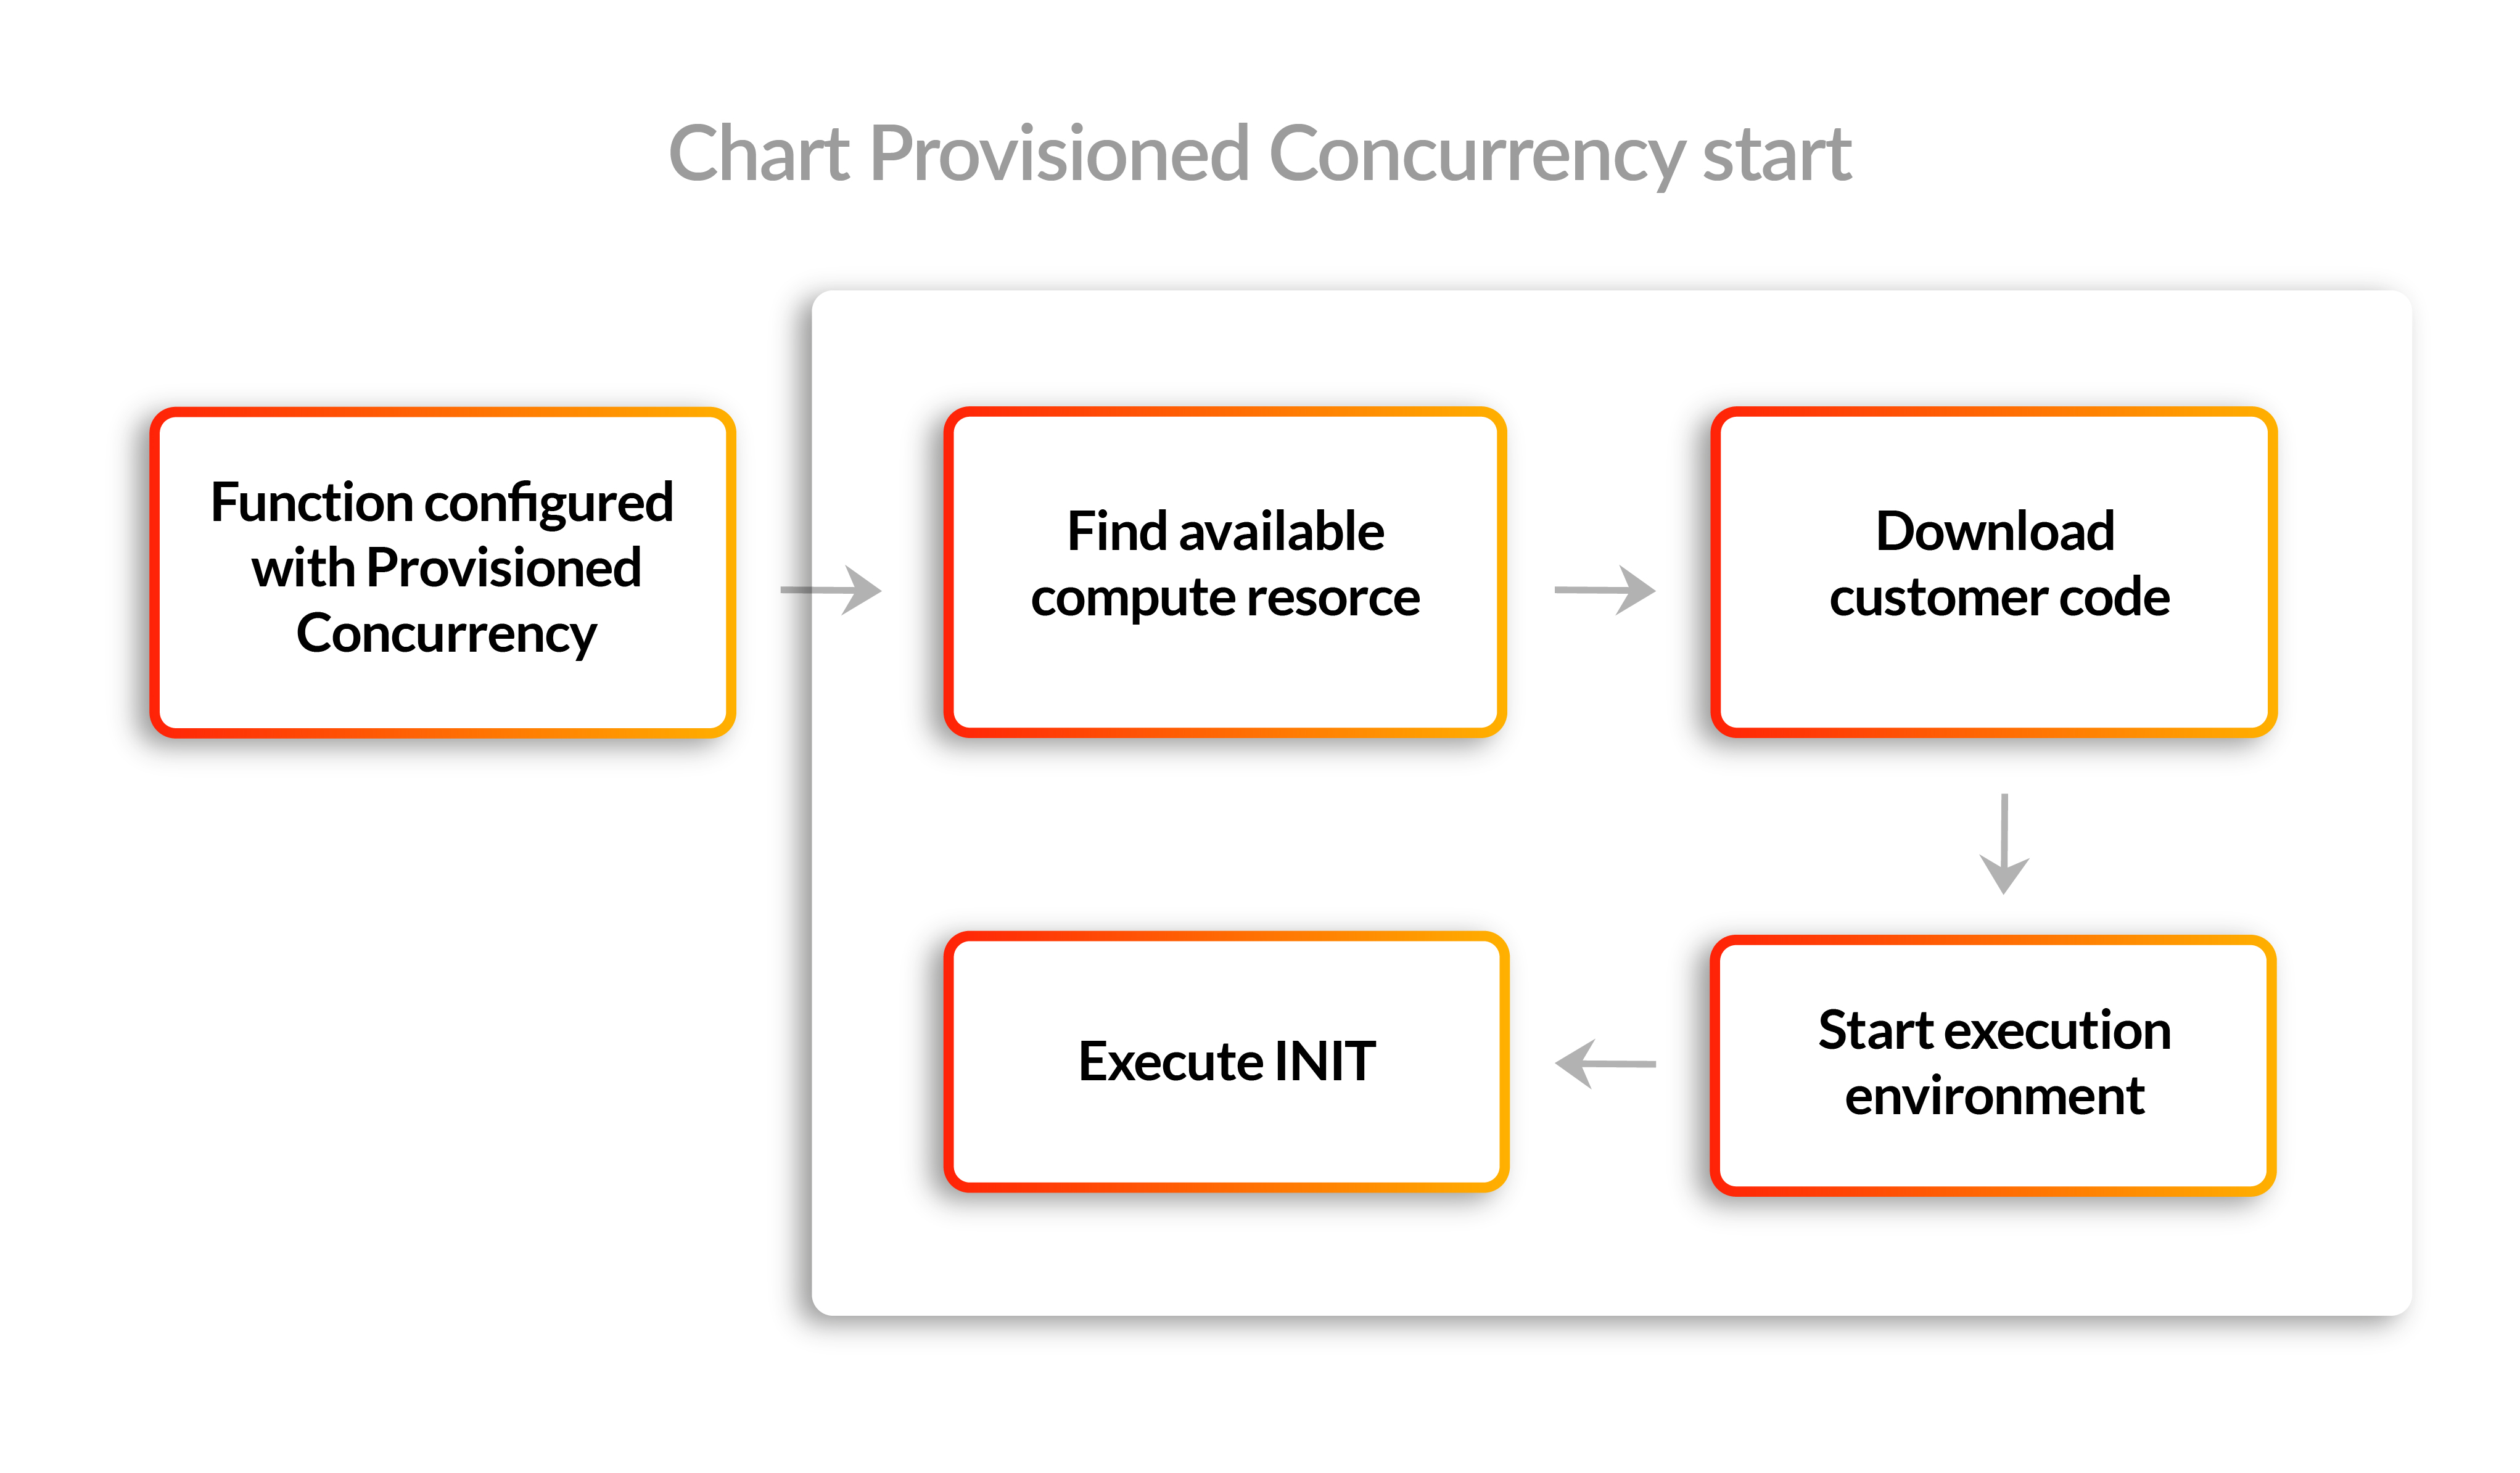 Provisioned Concurrency start